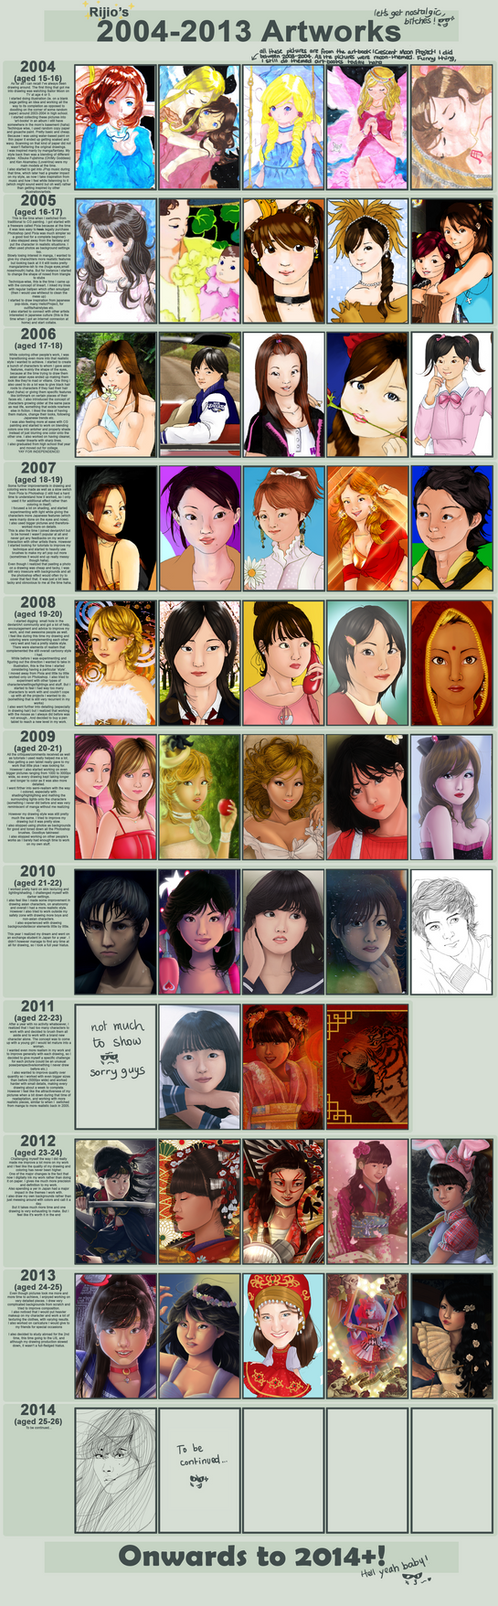 2004-2014 TEN YEARS of improvement meme by Rijio